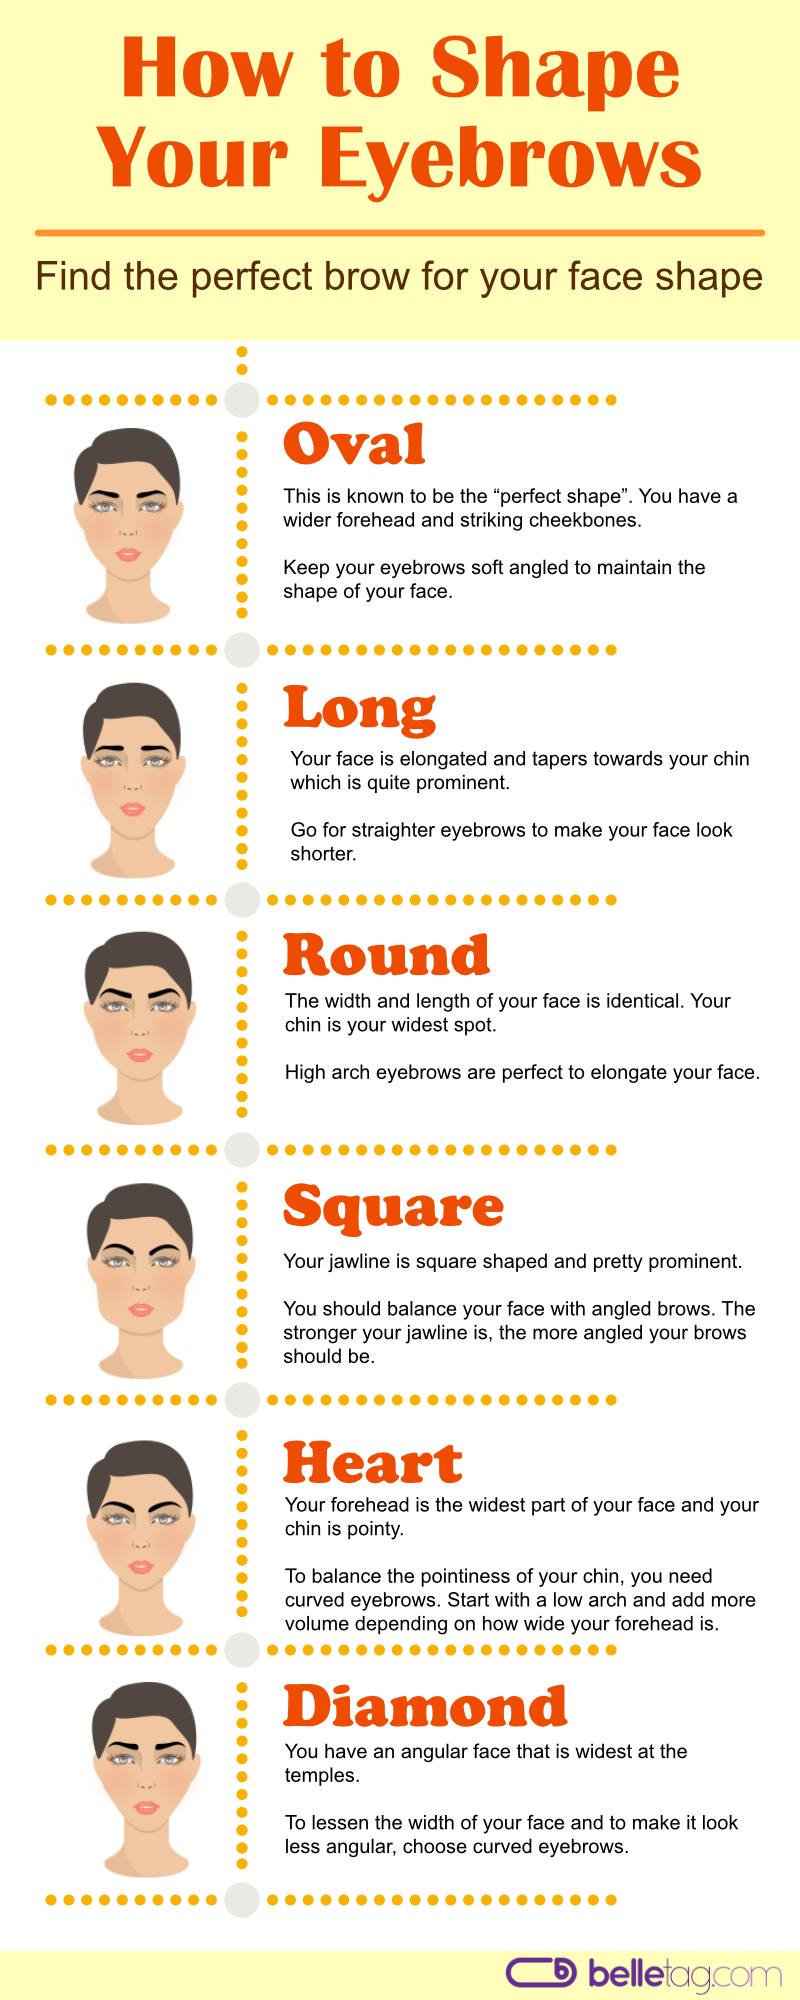 Find out which eyebrows fits you better! This guide will help you to understand your face shape and choose YOUR perfect brows. #EyeBrow #FaceShape